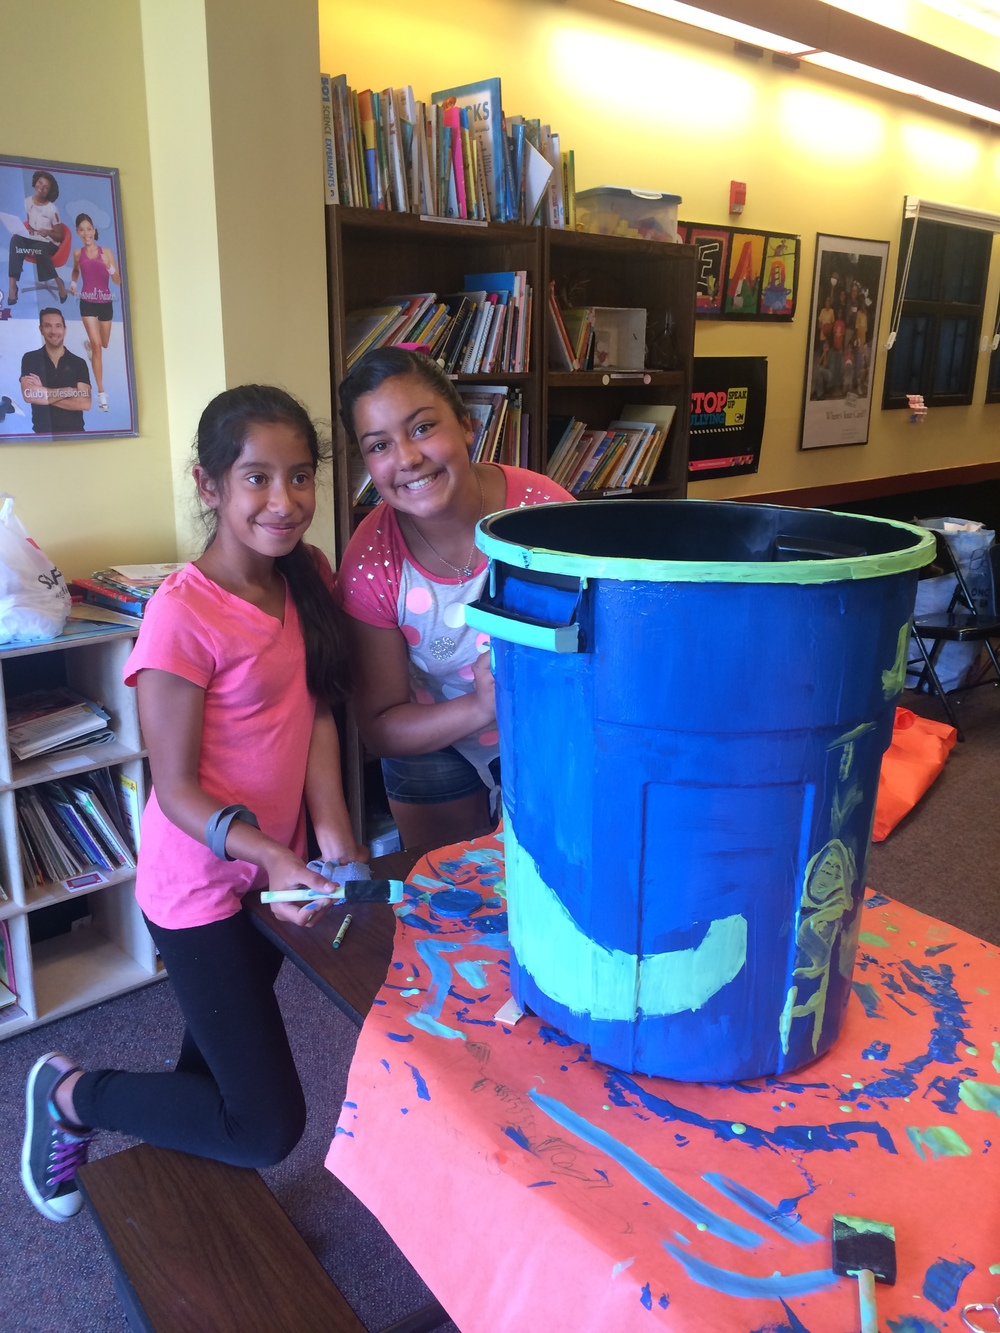 Two club members smile as they finish decorating their recycling bin